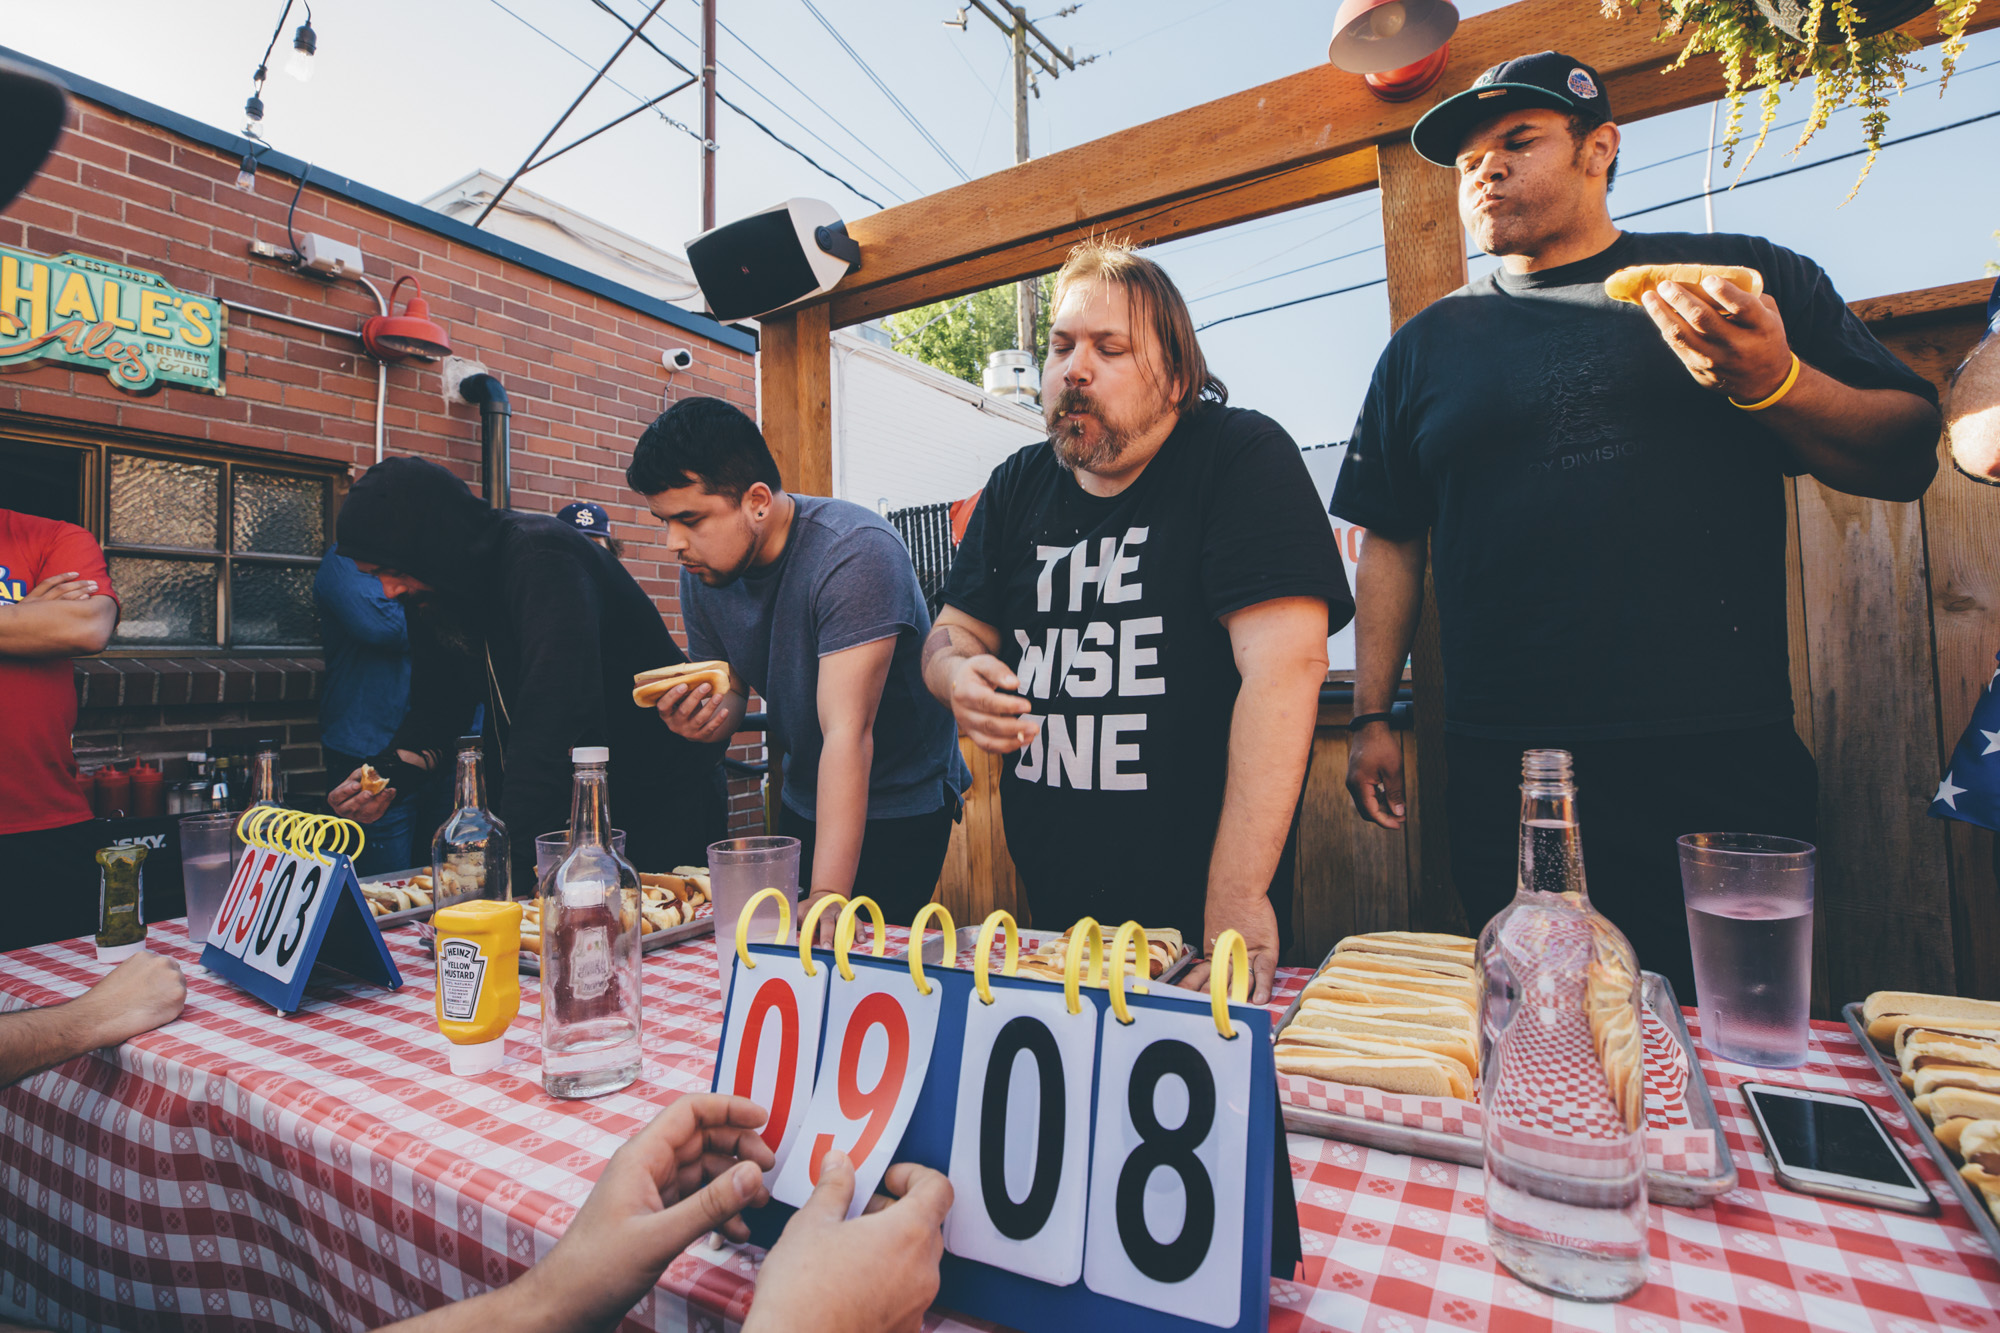 <p>Not necessarily your average Monday night, am I right?? The North Star Diner hosted a hot dog eating contest on their new patio last night, July 2, 2017. Round one pit bartenders, servers and chefs from local restaurants against each other, while round 2 was open to the general public. Let's just say...WHOA. Winners got prizes, and of course - the beloved Hot Dog Trophy. (Image: Sunita Martini / Seattle Refined)</p>